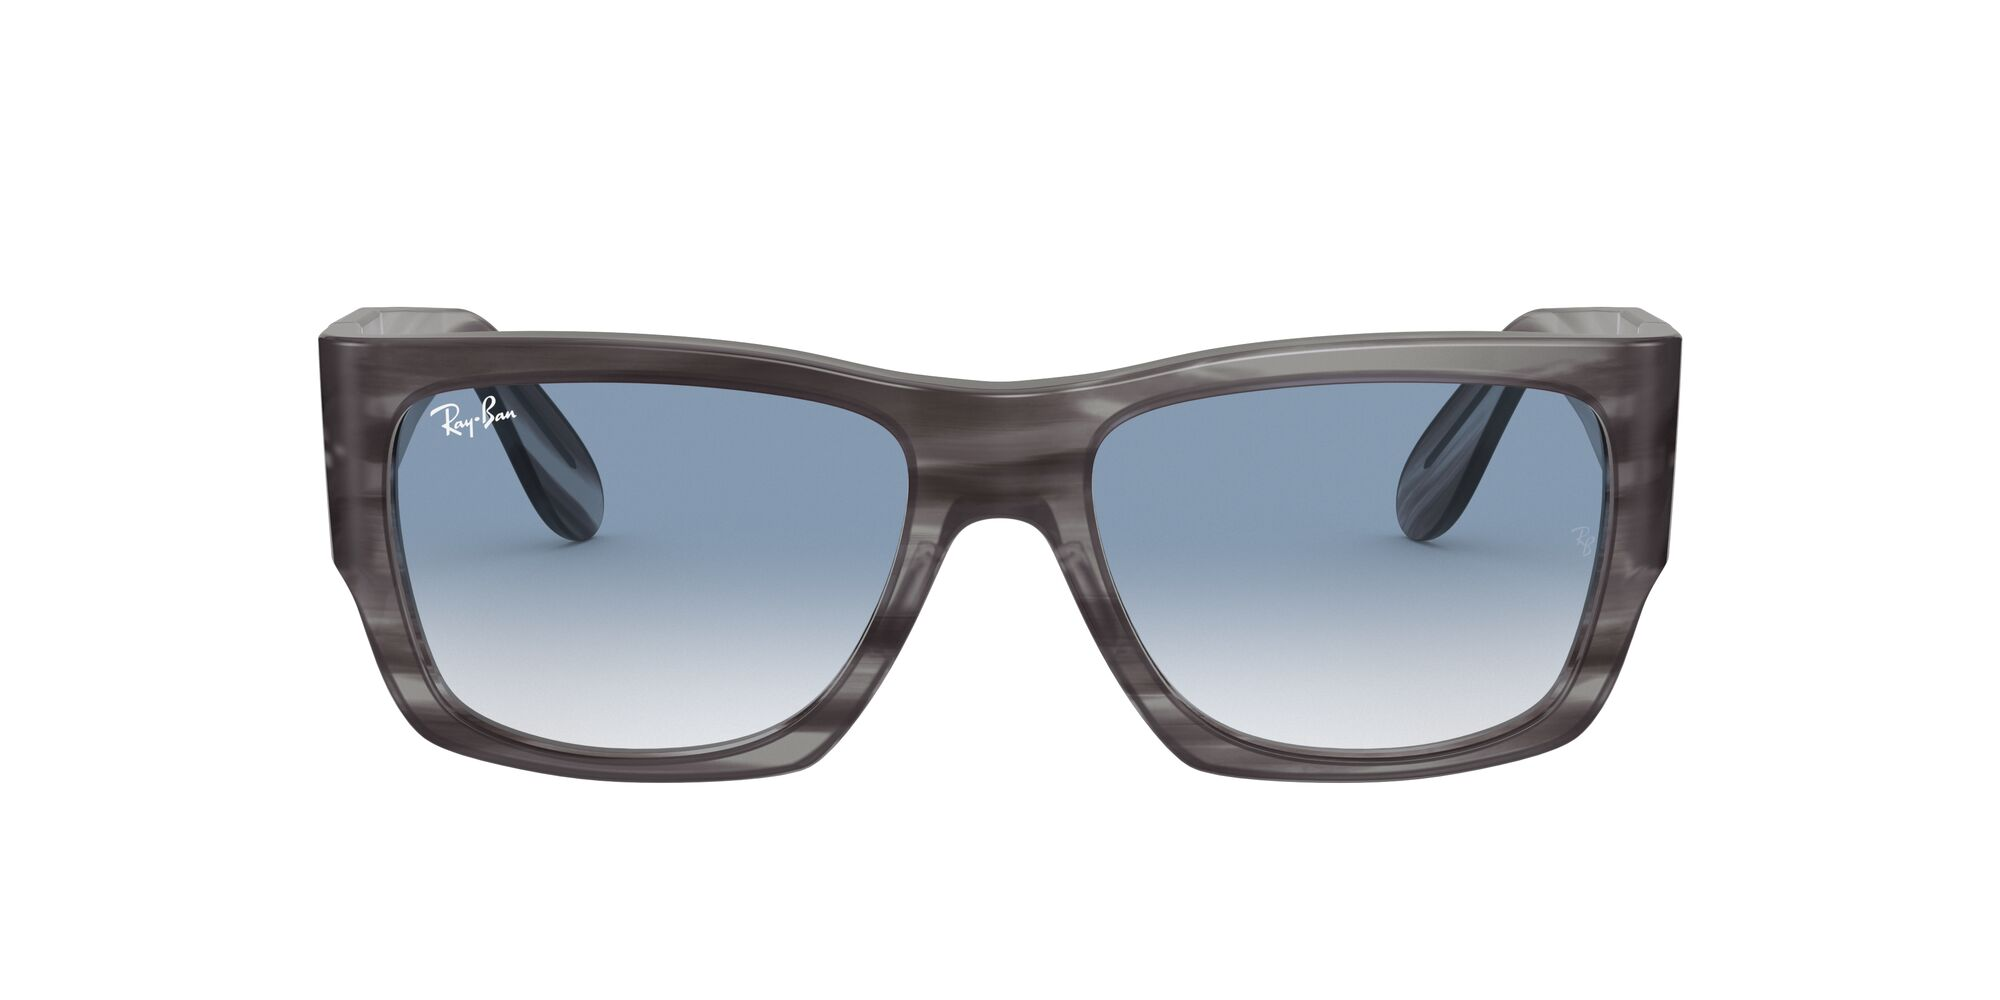 Front Ray-Ban Ray-Ban 0RB2187 13143F 54/17 Grijs/Blauw